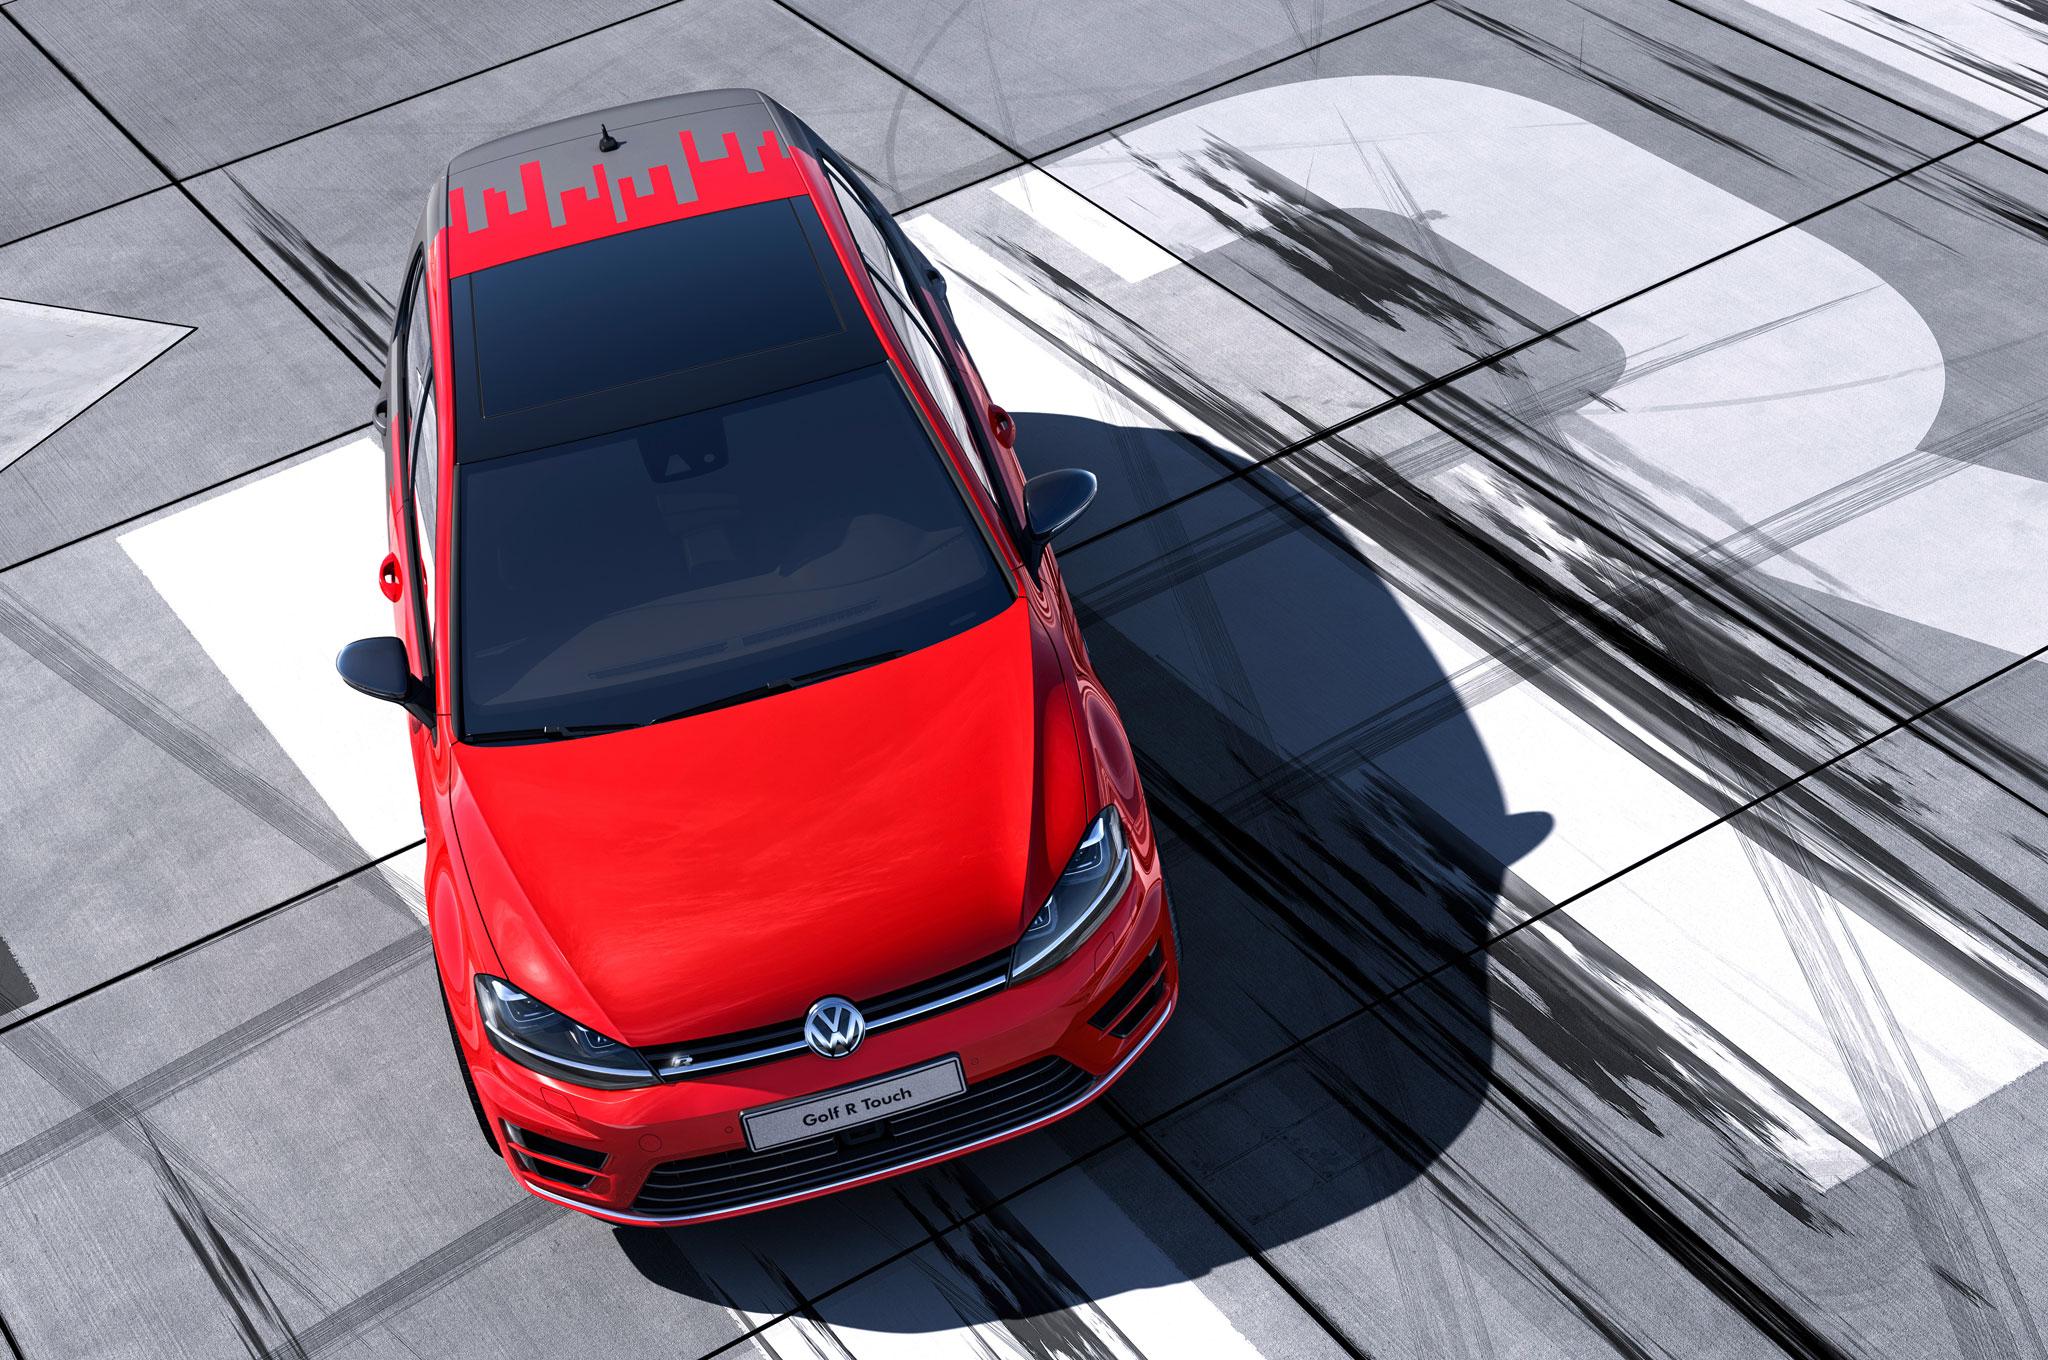 Volkswagen Details Infotainment, Electric Charging Tech at CES